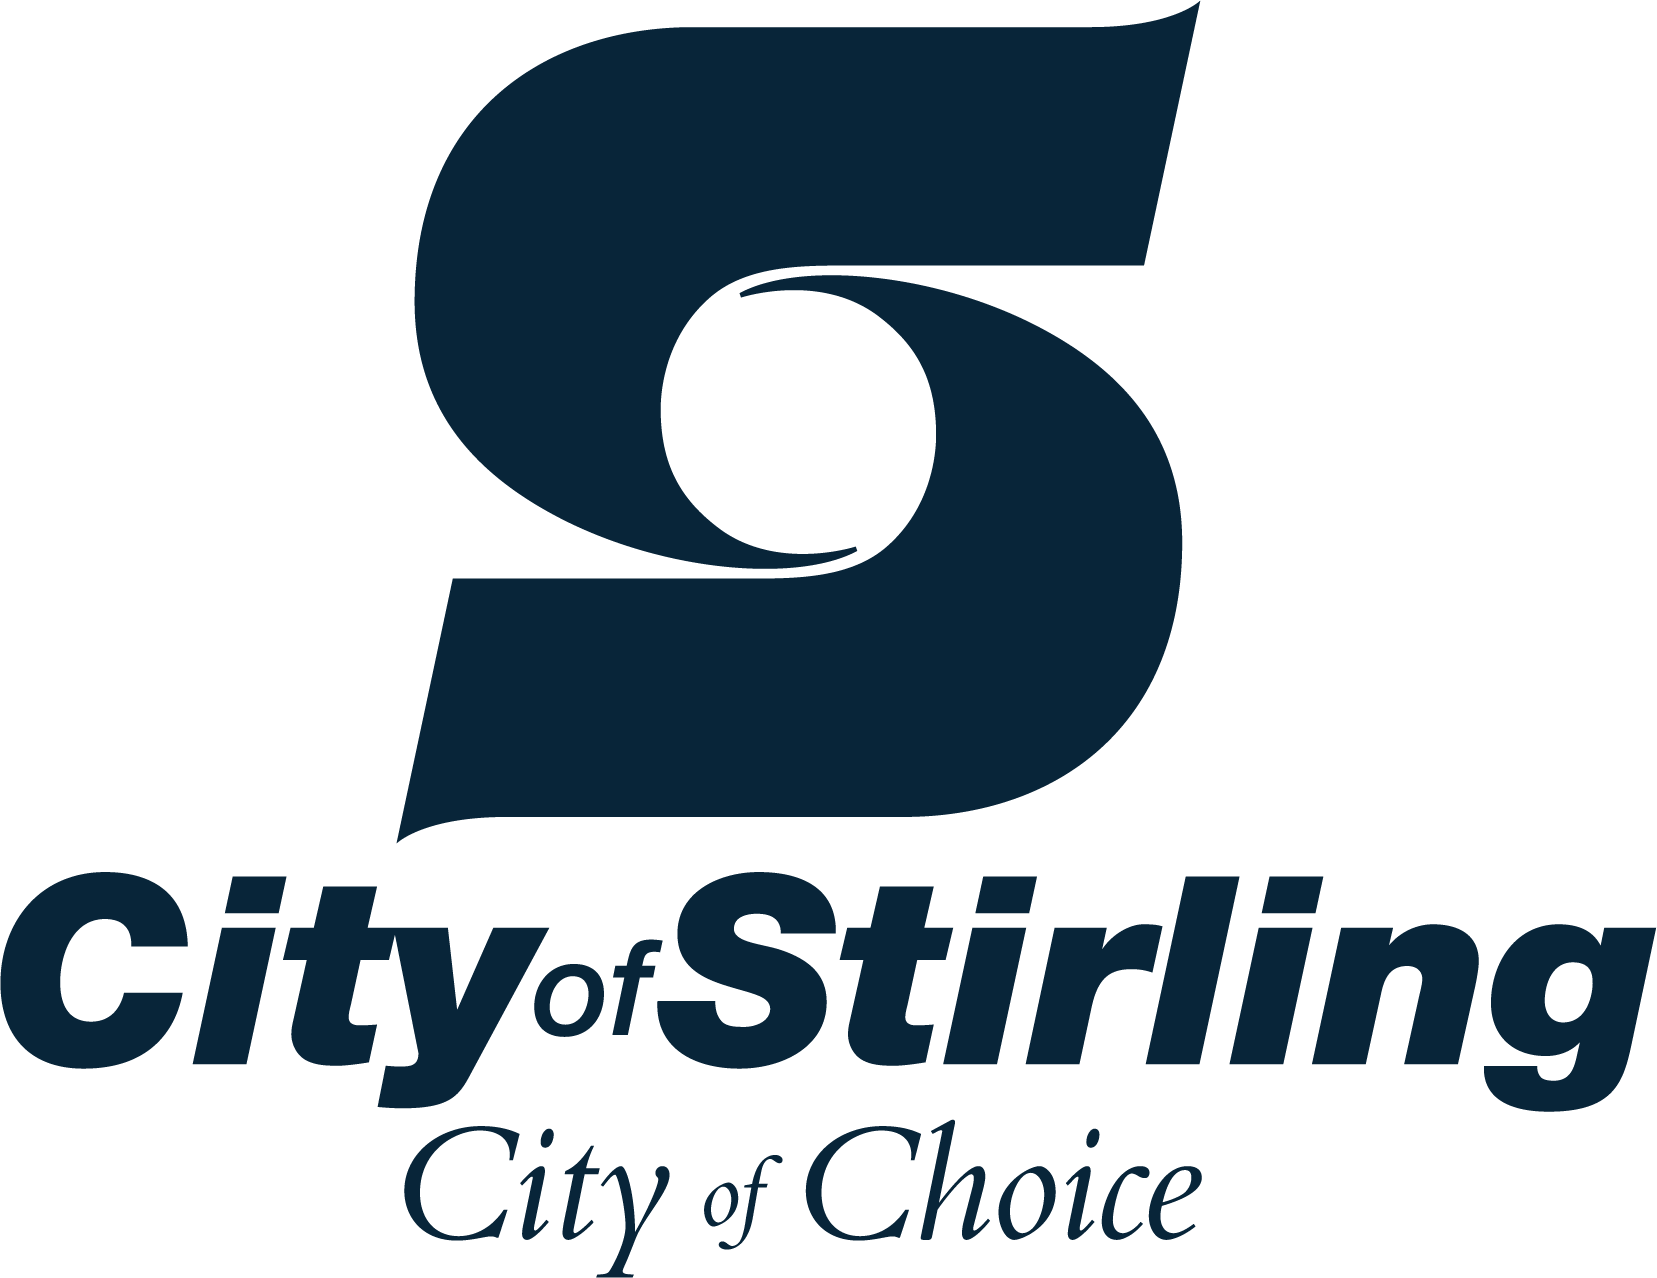 City of Stirling - City of Choice - Logo